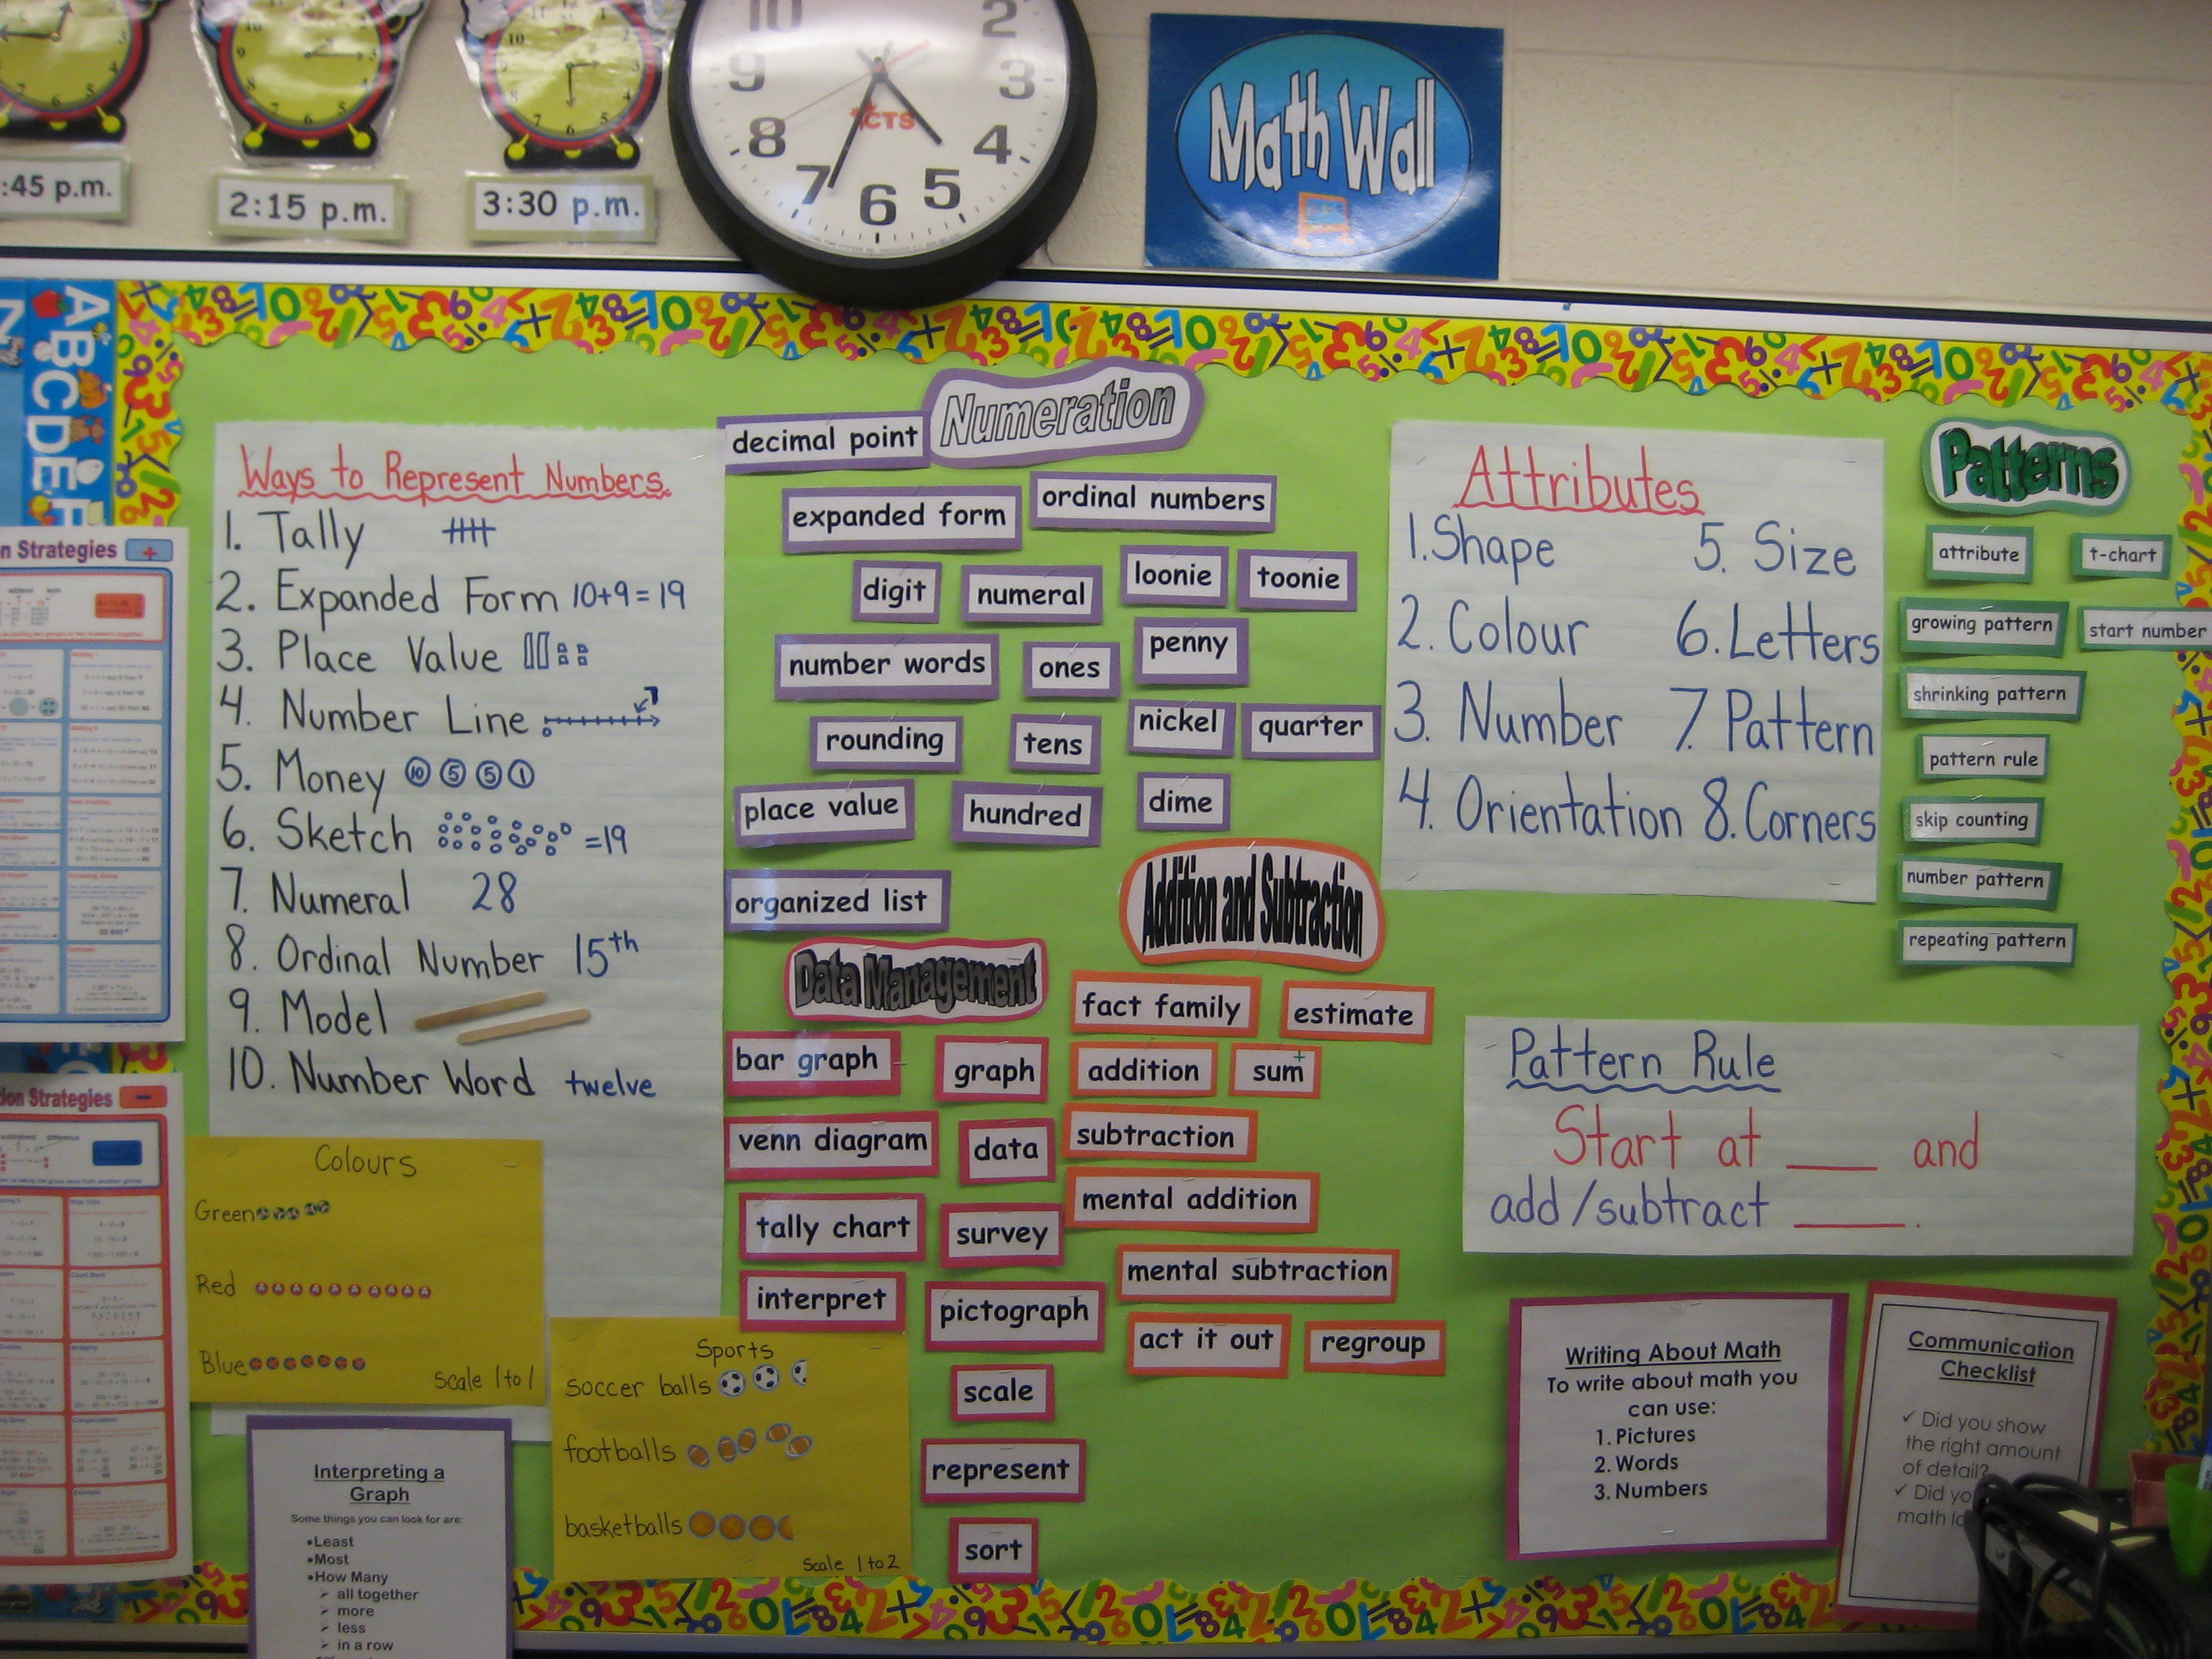 Math Focus Wall http://jenniferbrokofsky.wordpress.com/2010/09/06/math-walls/